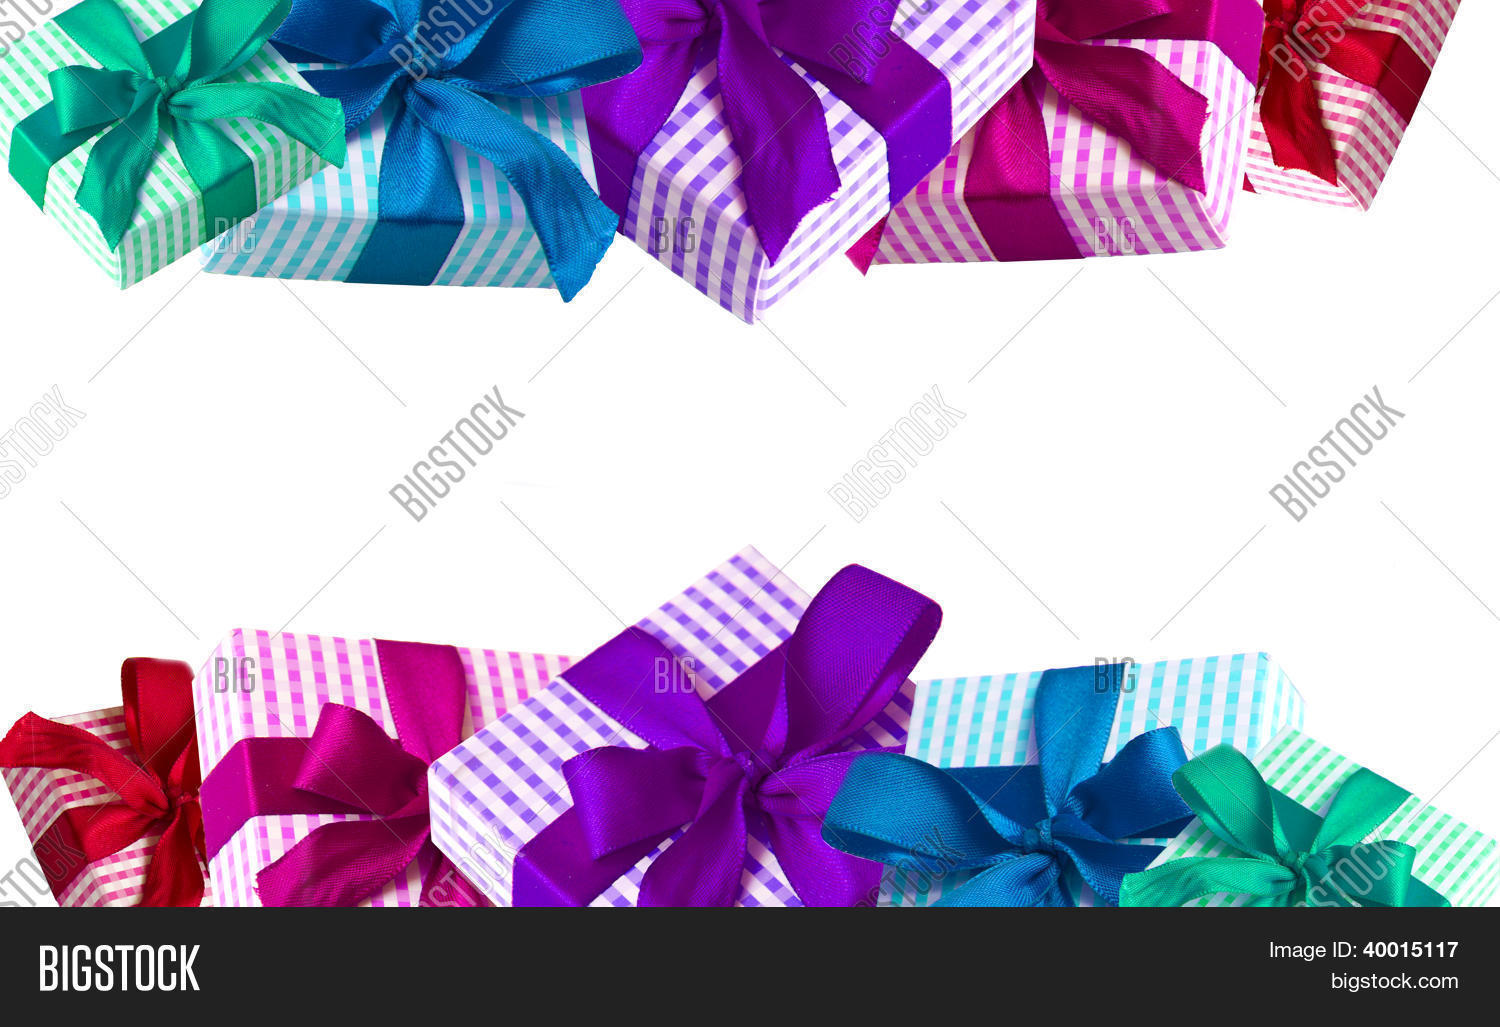 abstract,anniversary,background,birthday,blue,border,bow,box,celebrate,celebration,christmas,colorful,colors,decoration,decorative,get,getting,gift,giftbox,give,giving,gradient,happiness,holiday,isolated,joy,mint,party,party-time,partying,pink,purple,red,satene,small,squared,surprise,tied,valentines,wallpaper,wedding,white,wrapped,wrapping